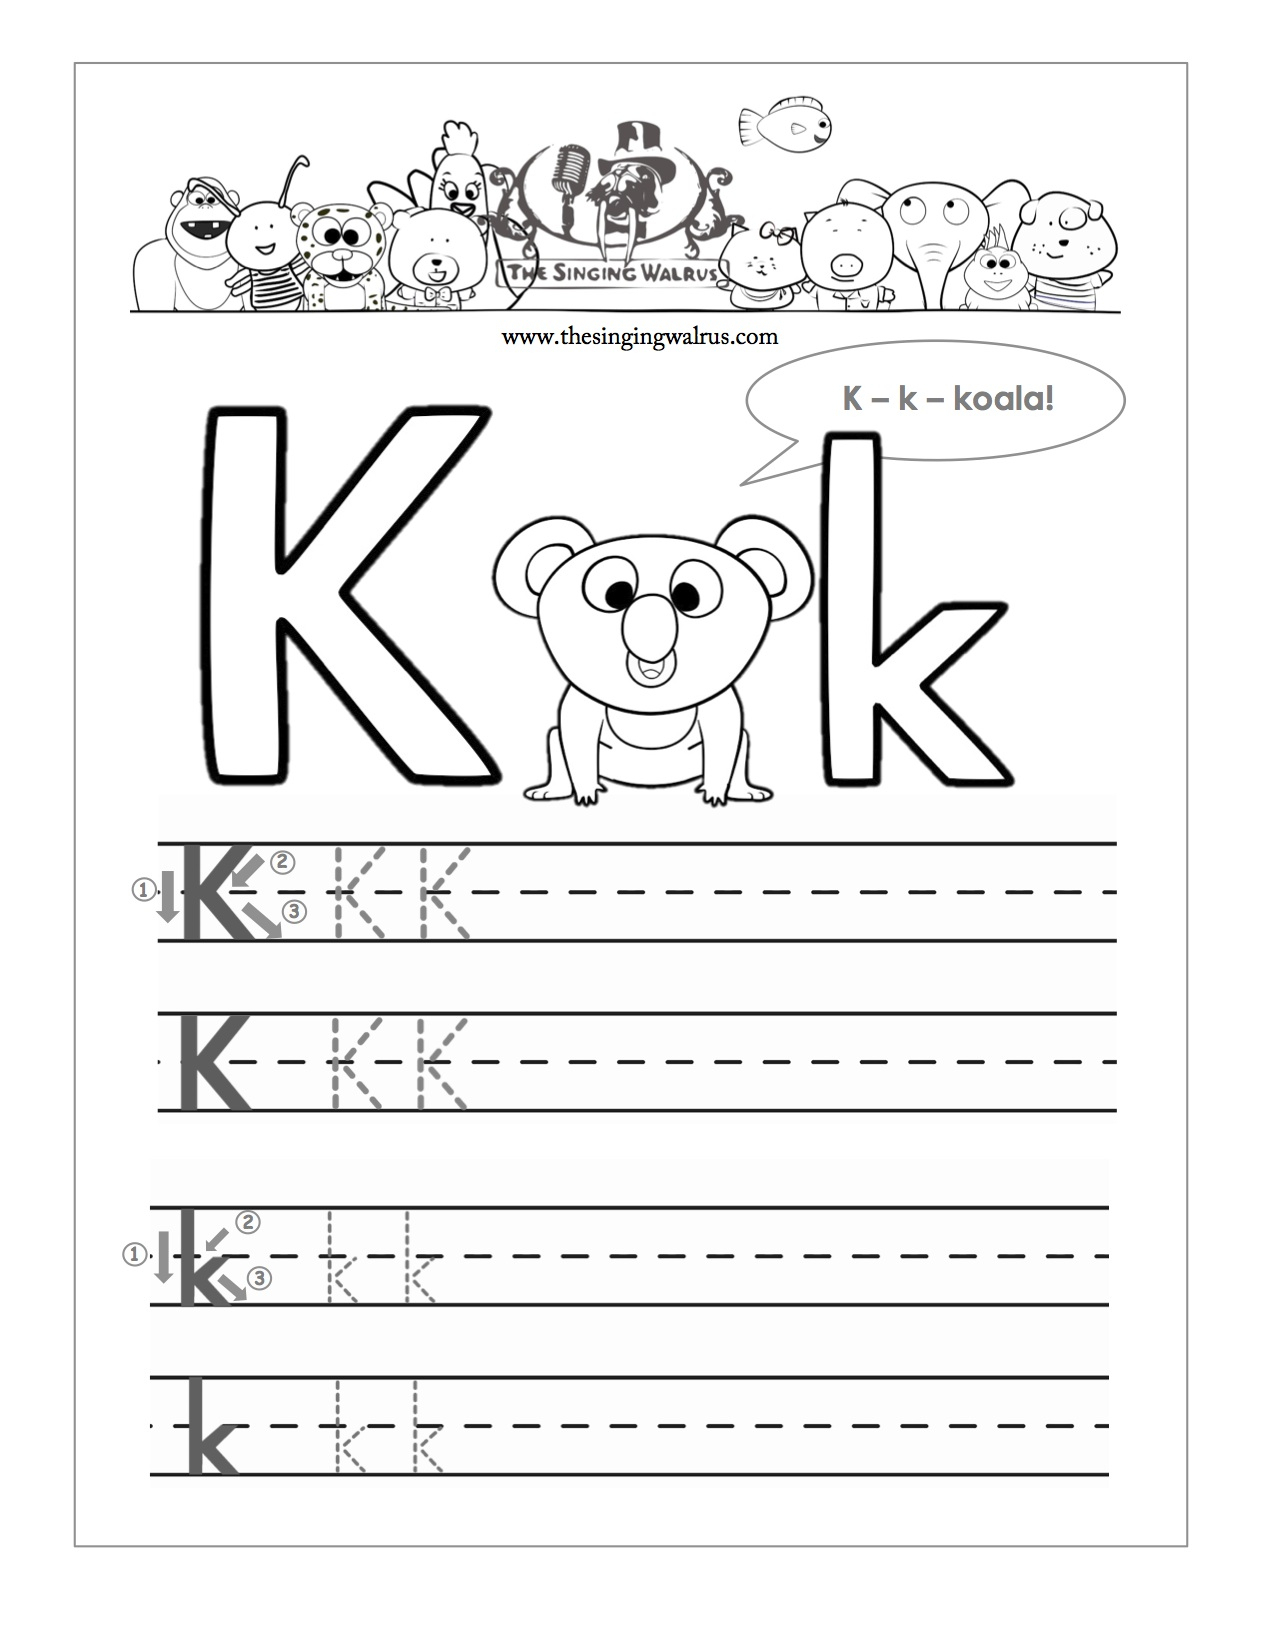 15 Learning The Letter K Worksheets | Kittybabylove inside Letter K Worksheets For Prek